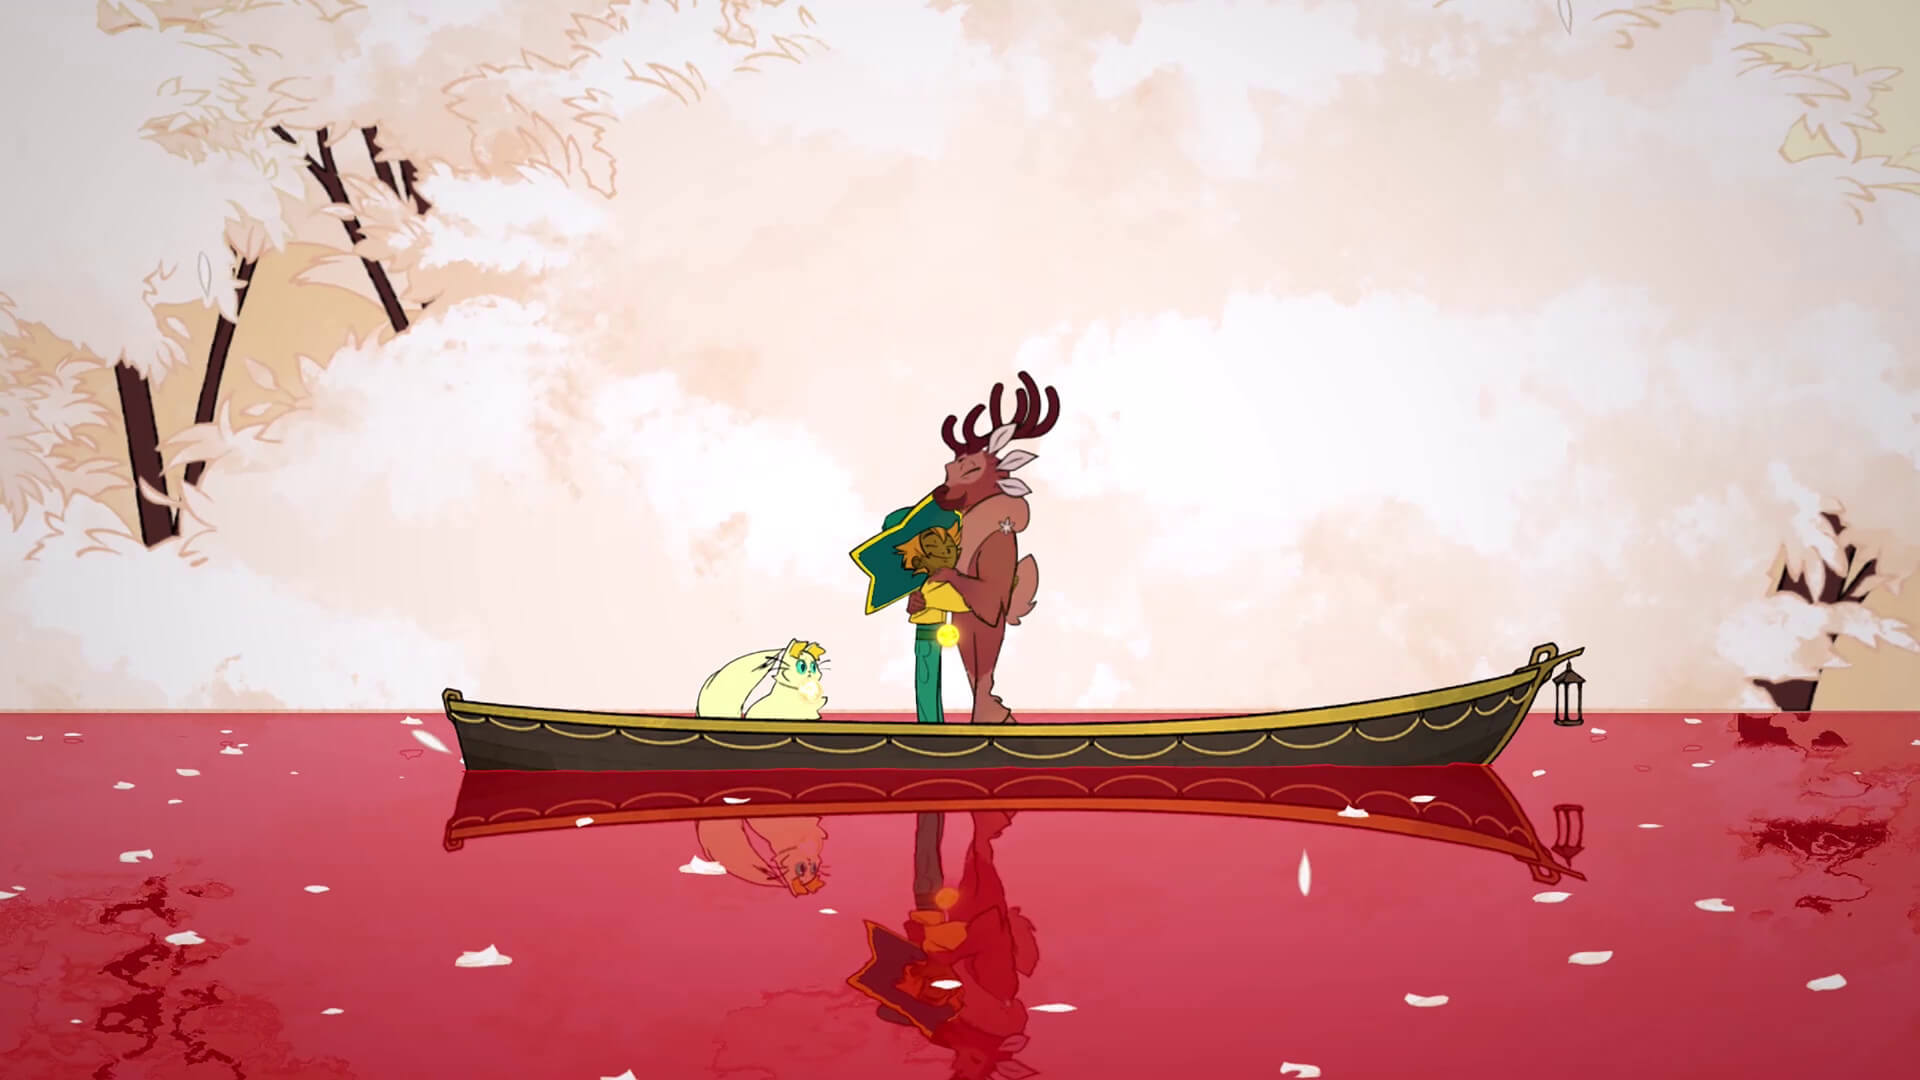 The Wild at Heart Review: Pikmin with a New Skin